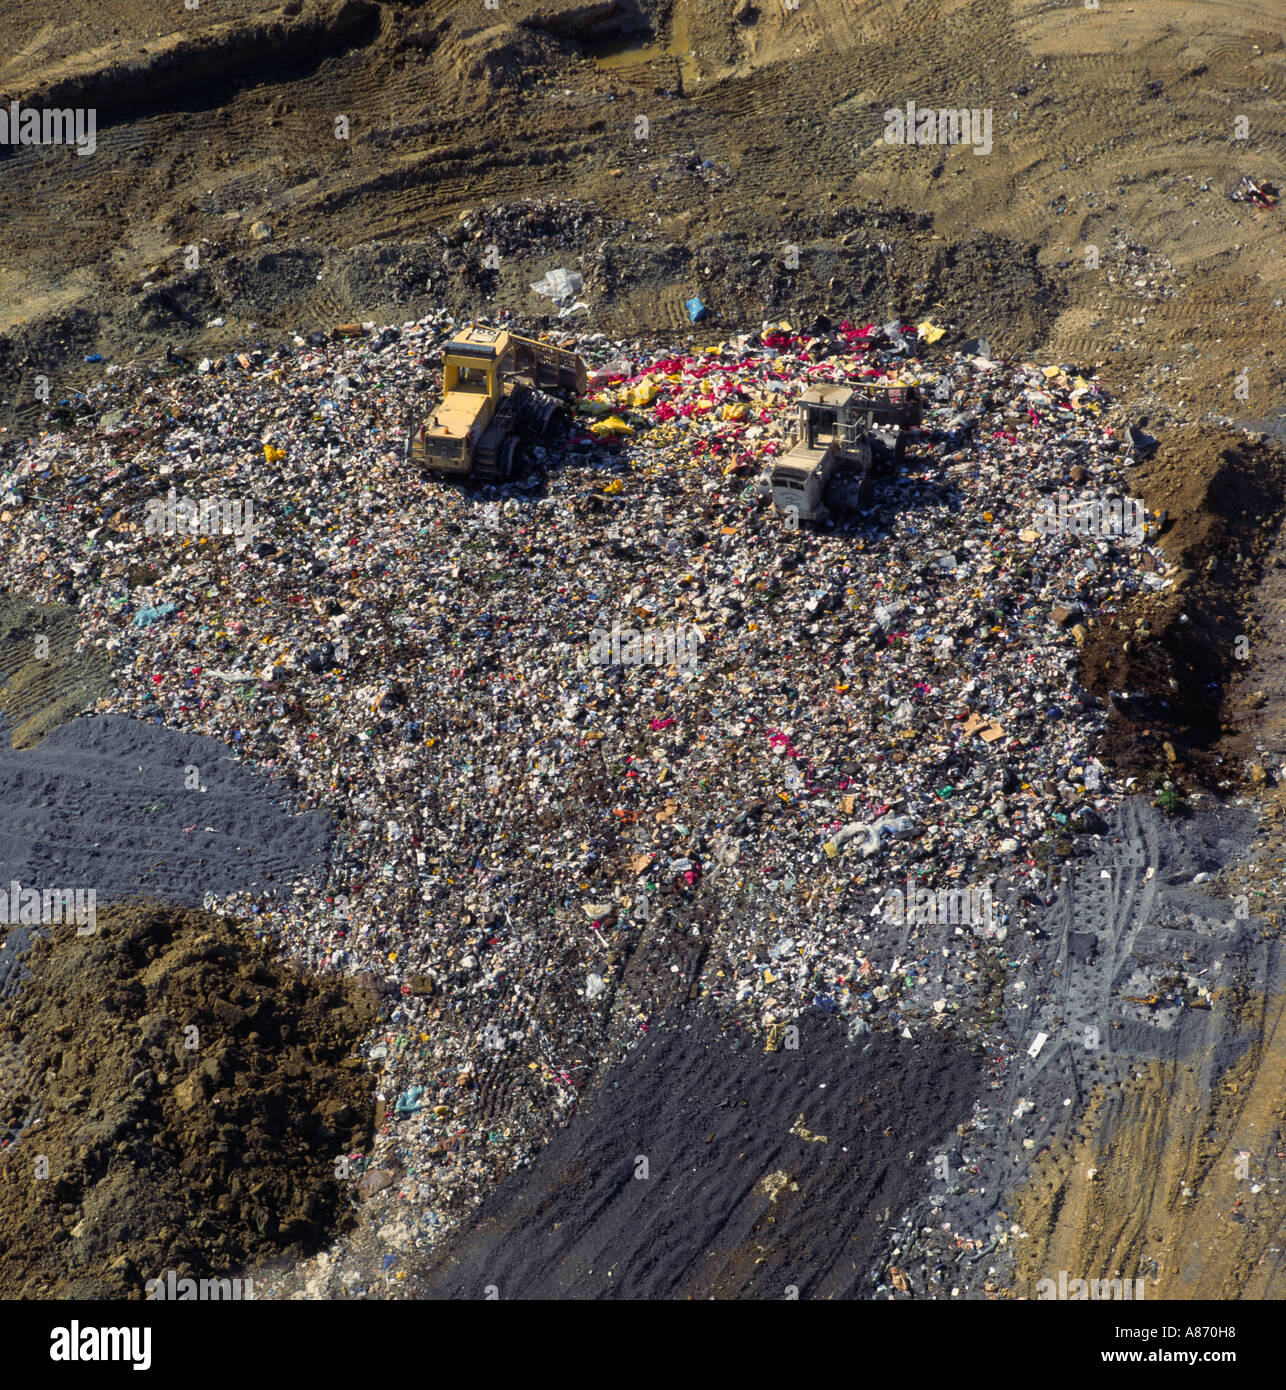 Diggers at work on landfill site UK aerial view - Stock Image